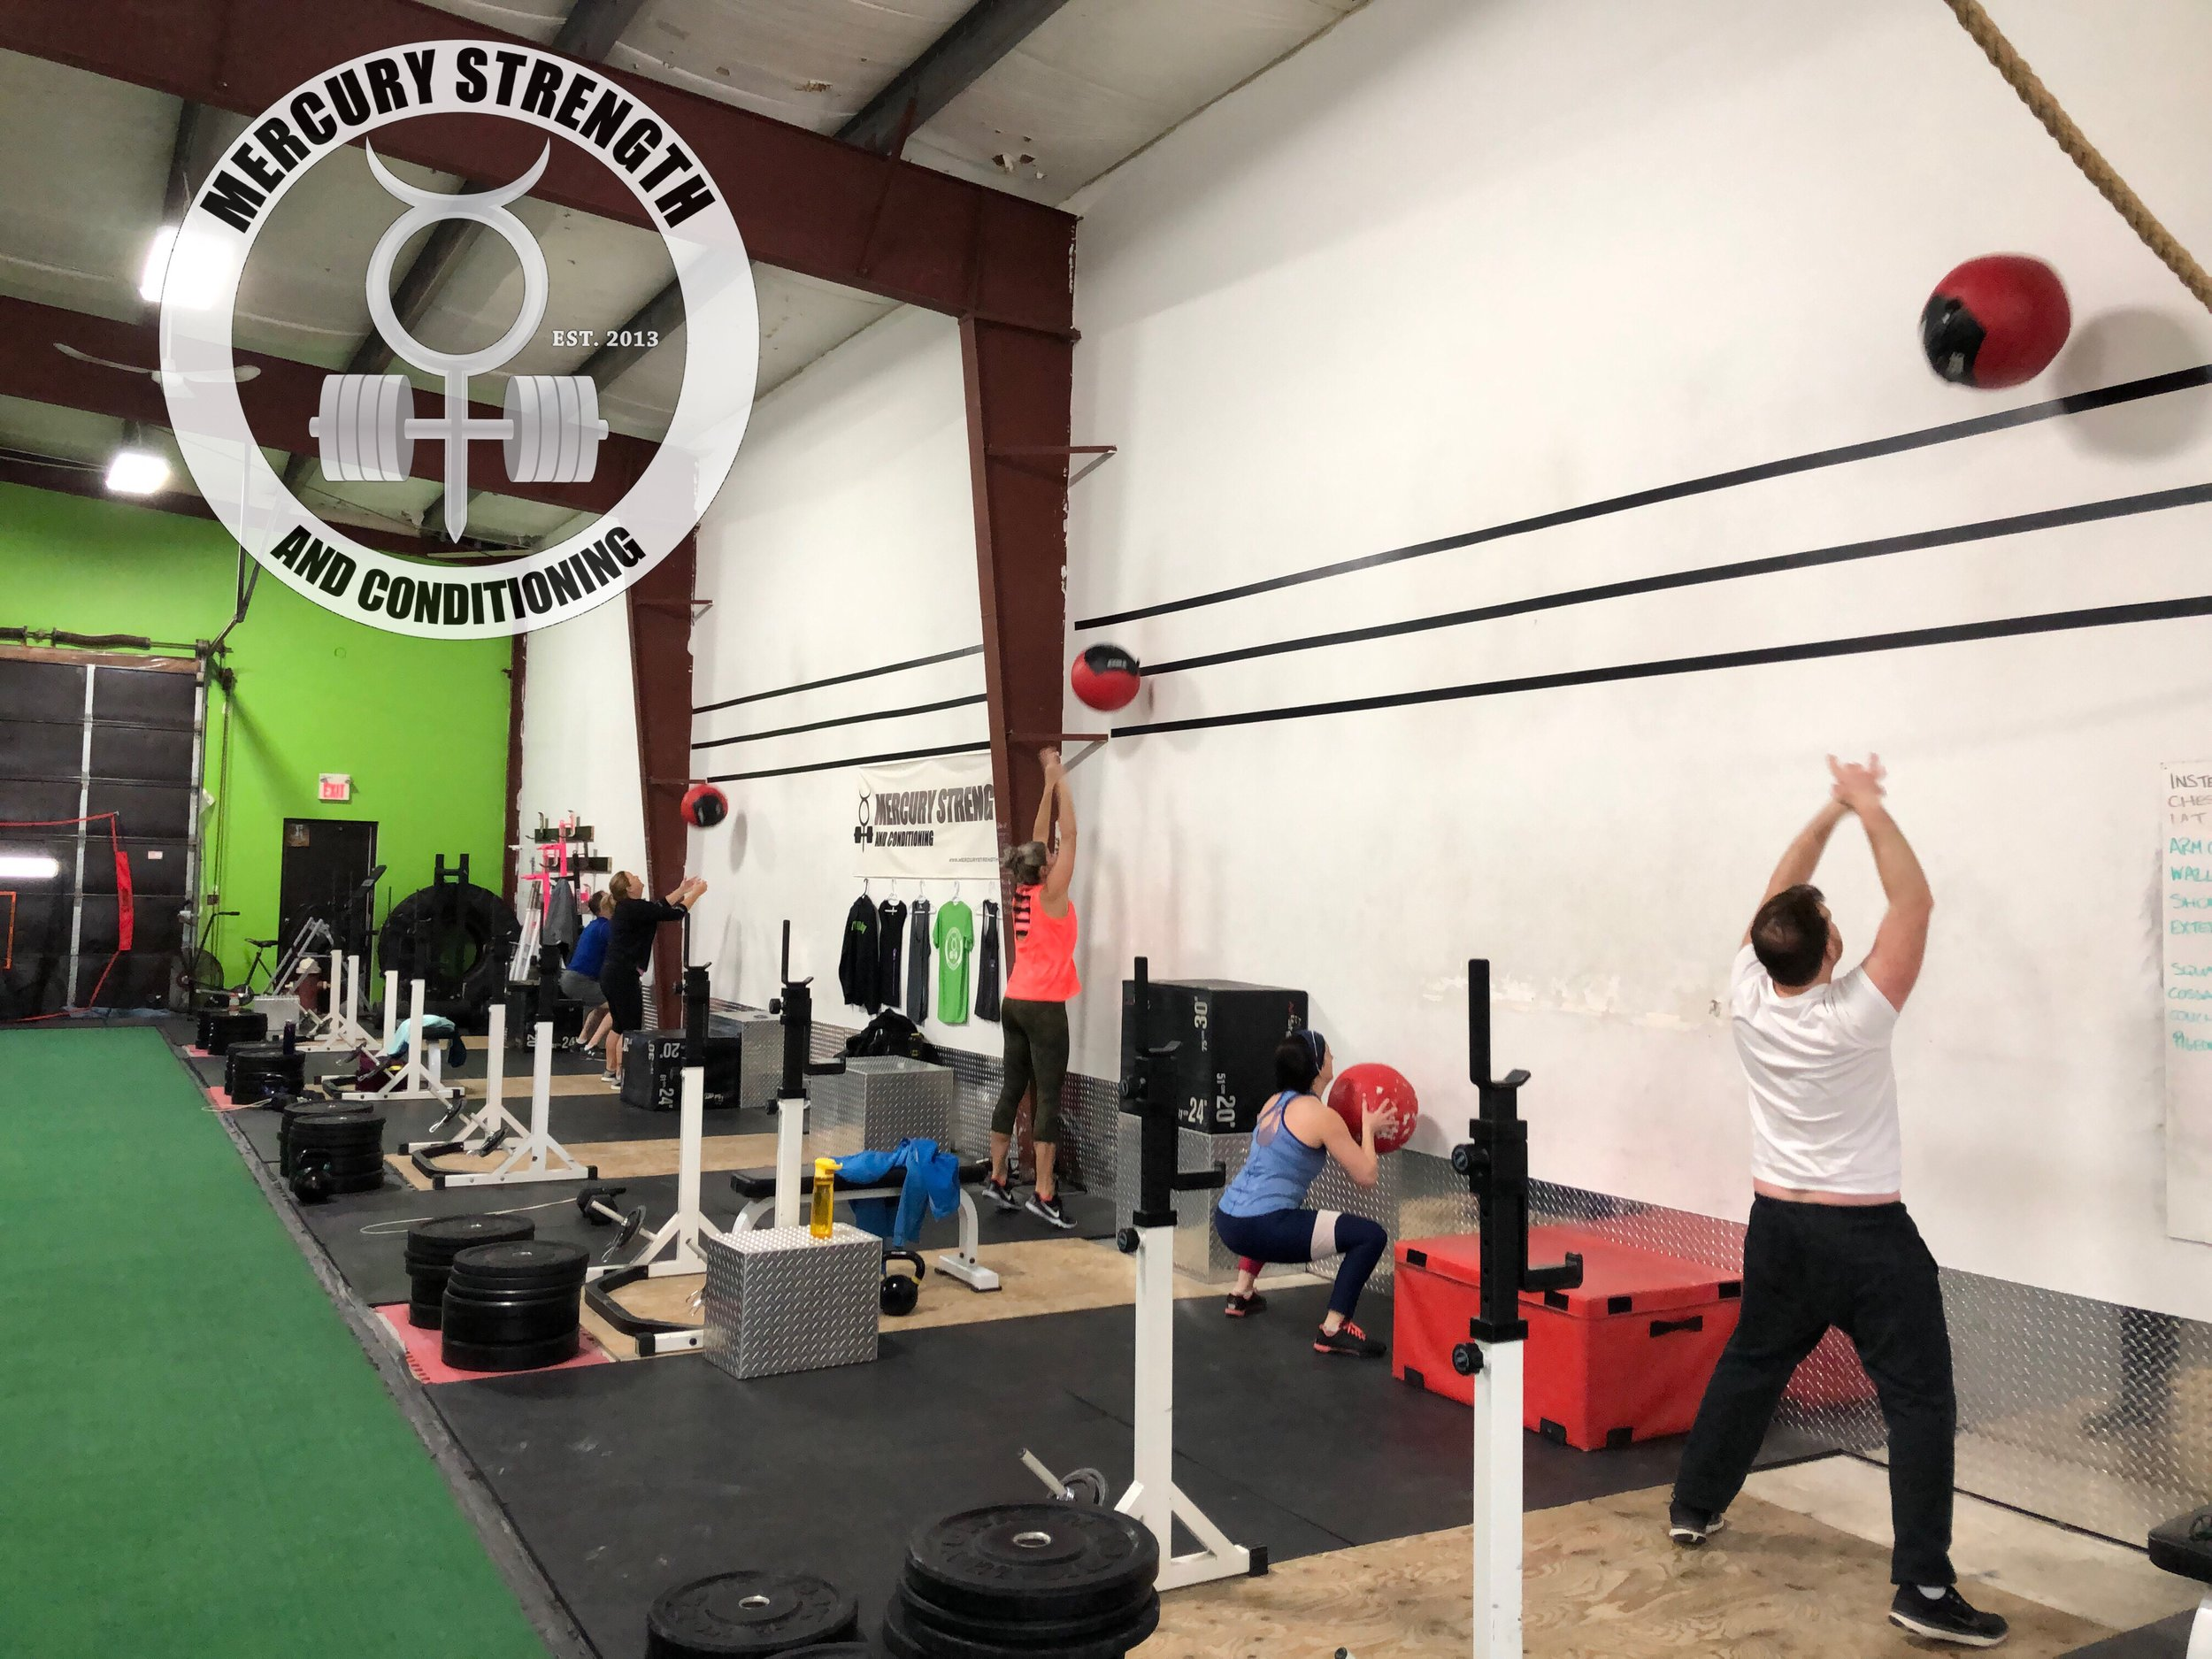 Gym-powerlifting-Olympic lifting-fitness-personal training-training-bootcamp-crossfit-kingston-kingston gym-kids-mercury-strength-conditioning-athlete-wall ball